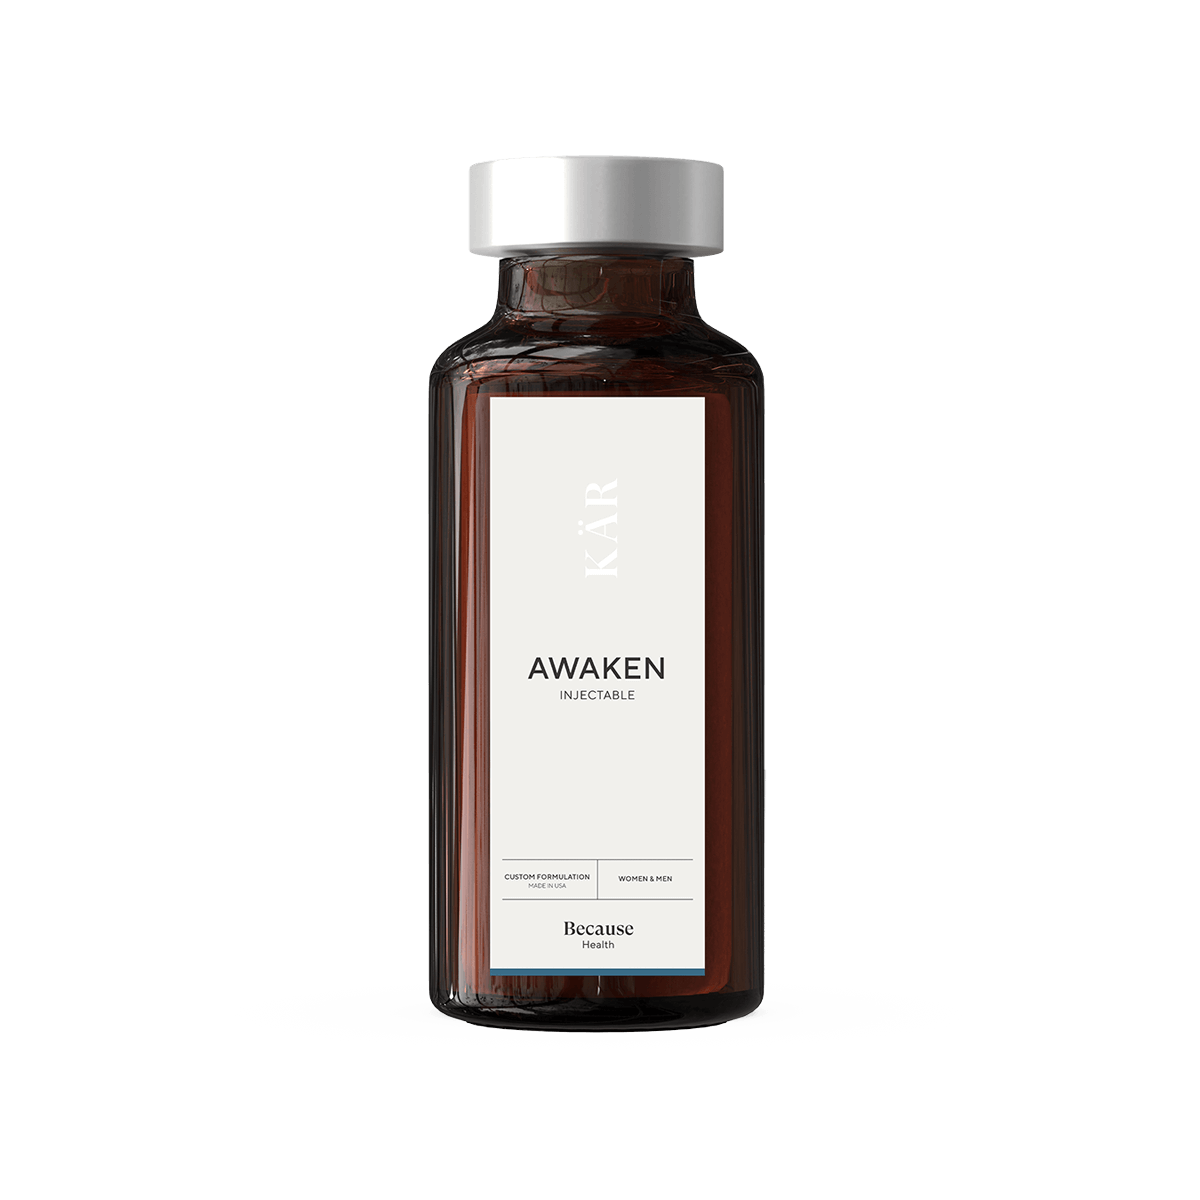 Awaken Injectable